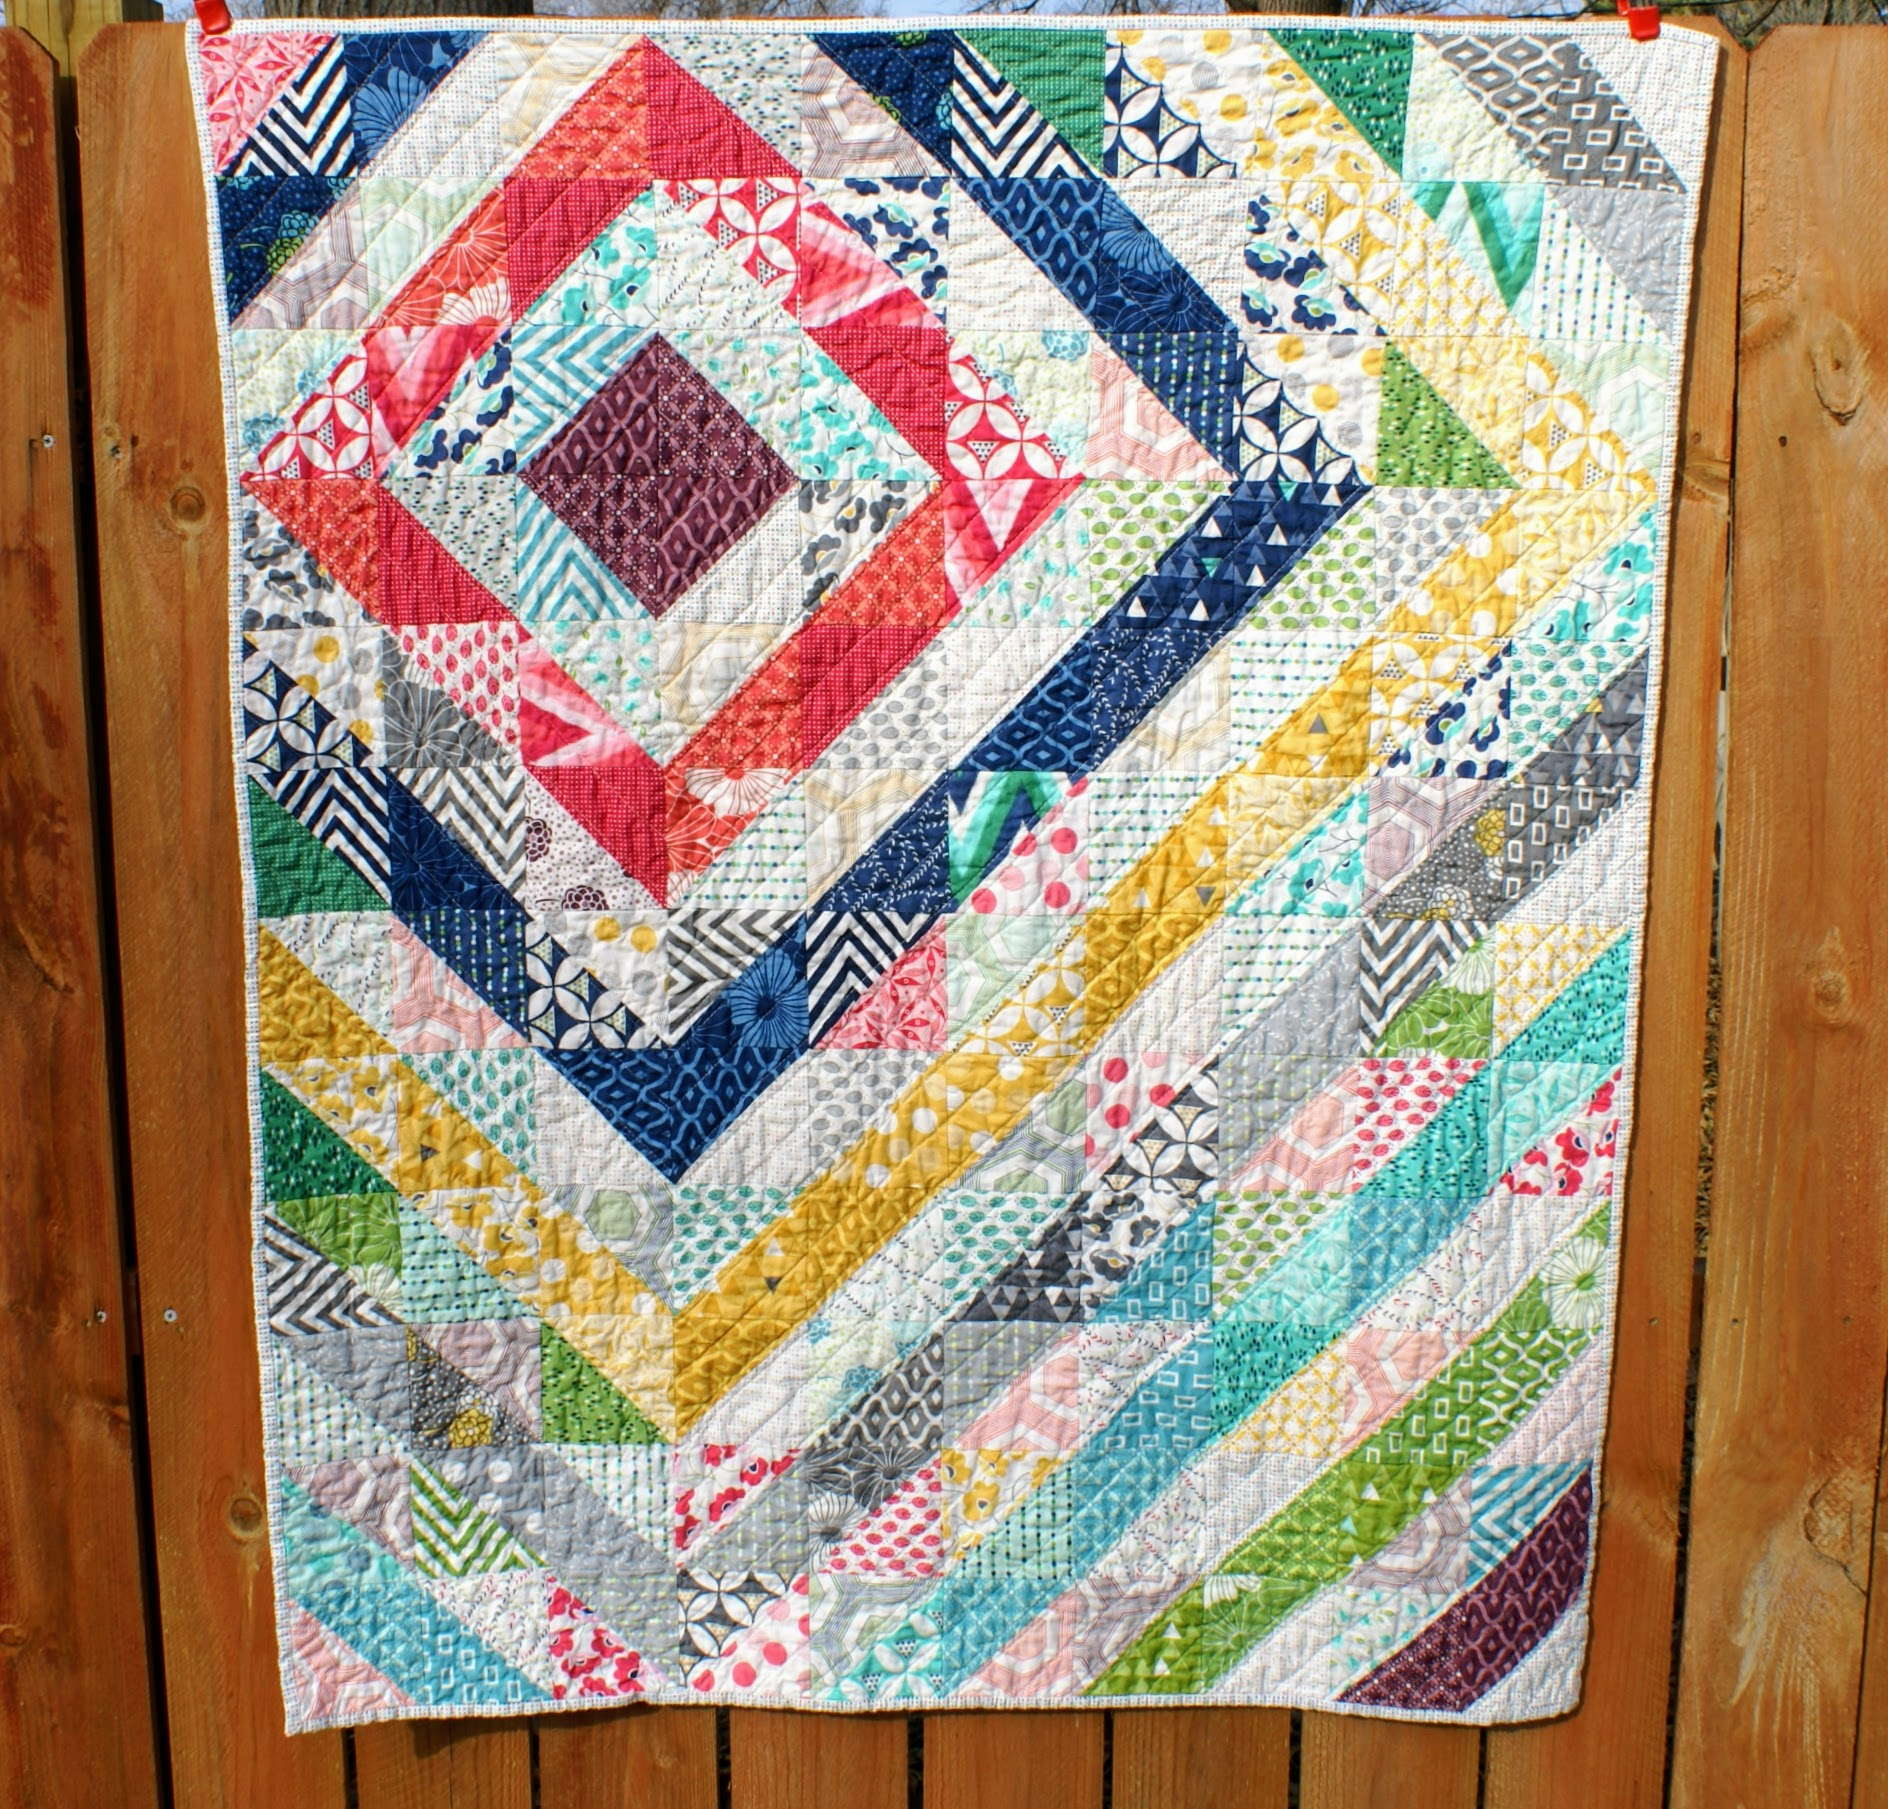 Quilt by Committee - V&Co HST Quilt - Quiltytherapy | Quiltytherapy : hst quilt - Adamdwight.com